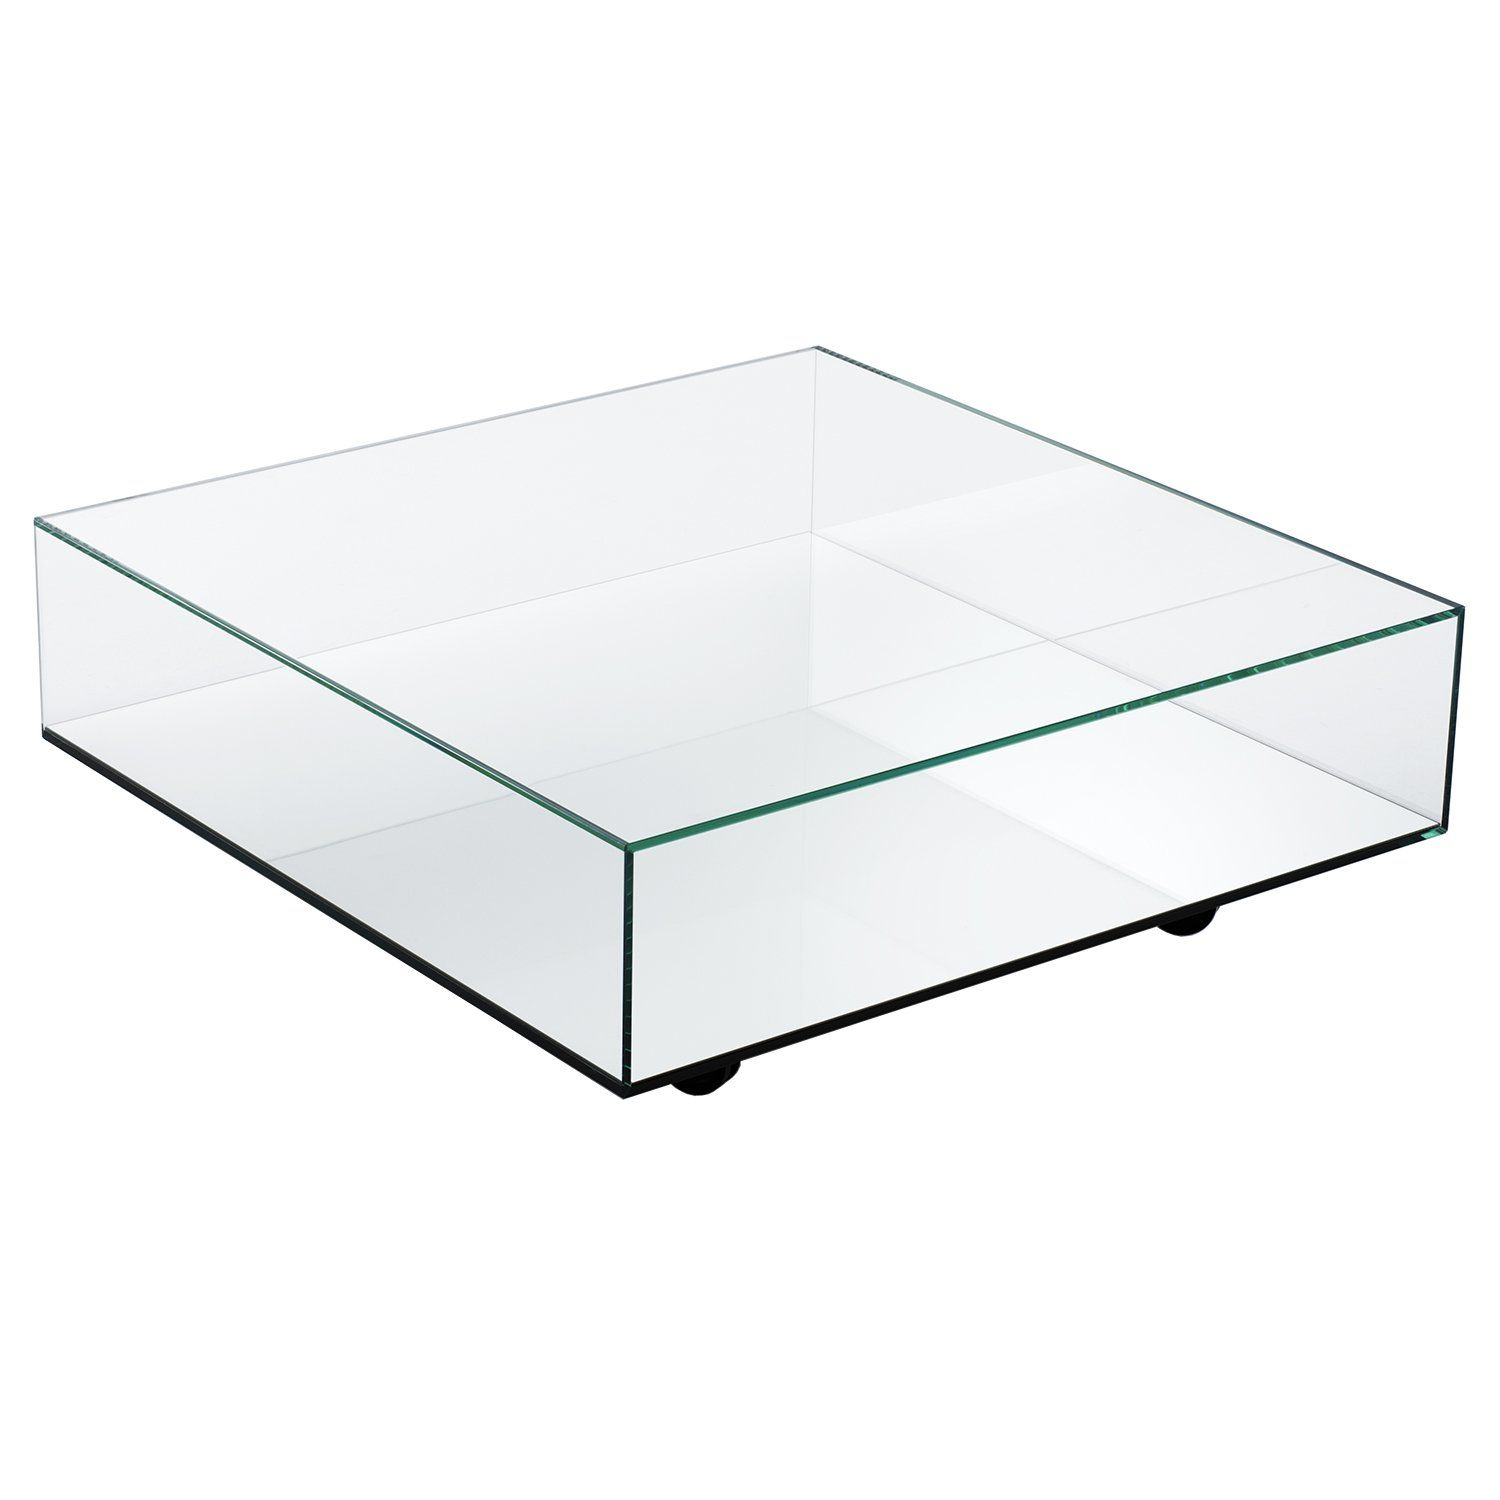 Description split Reflect adds an extra dimension to the idea of a mirrored coffee table. Objects can be placed on either the ultra-clear glass top panel or the mirrored bottom to create intriguing double reflections and op art effects. Two sides of the box are open, allowing access to the mirrored surface while the wide top surface is strong enough to support heavy pieces. The table is situated on high-quality casters so it can be moved easily but with enough friction to still stay in place. An